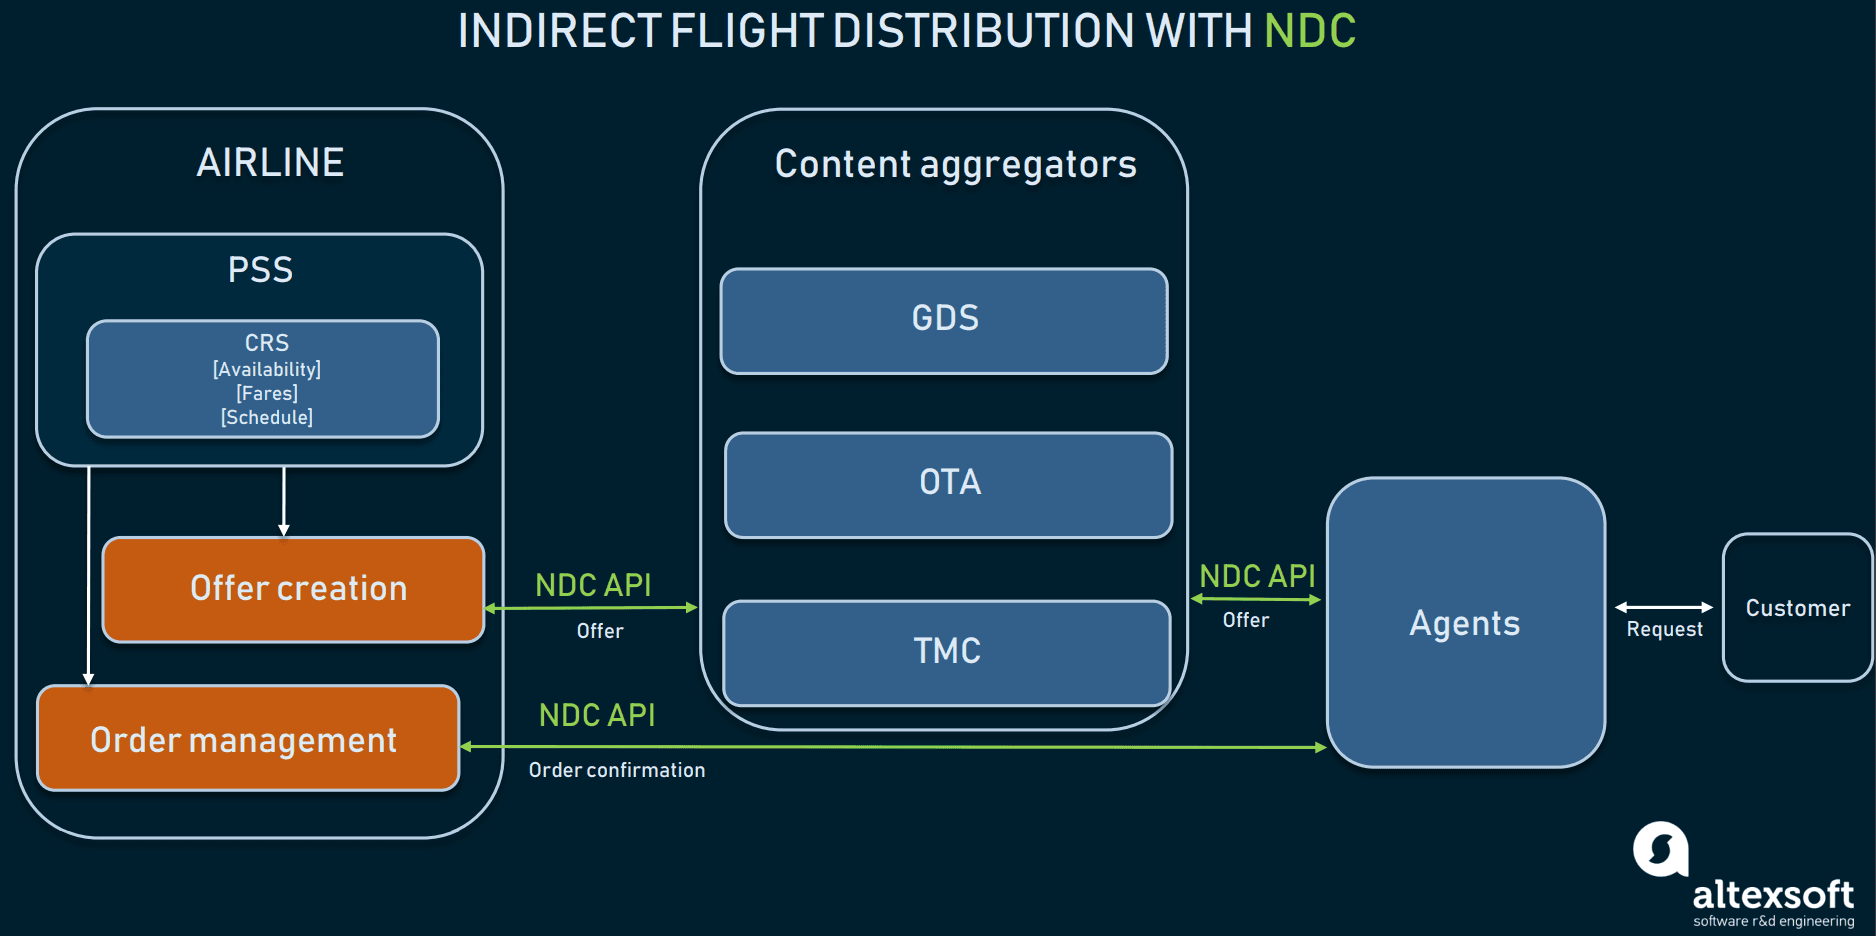 Indirect flight distribution with NDC: Airlines have offer and order management systems that interact with their PSS